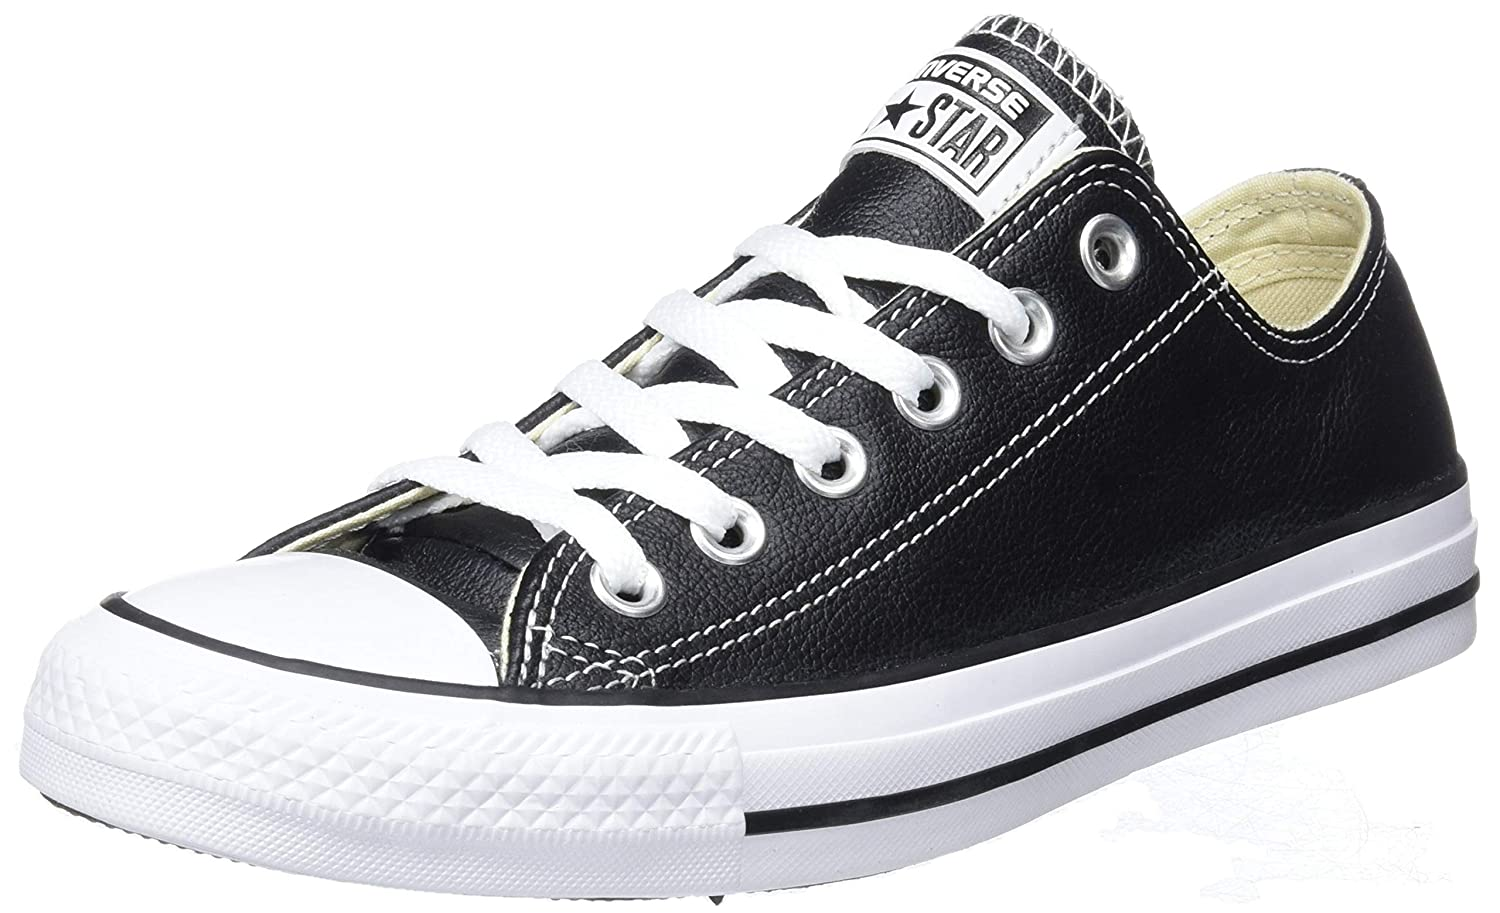 2converse low